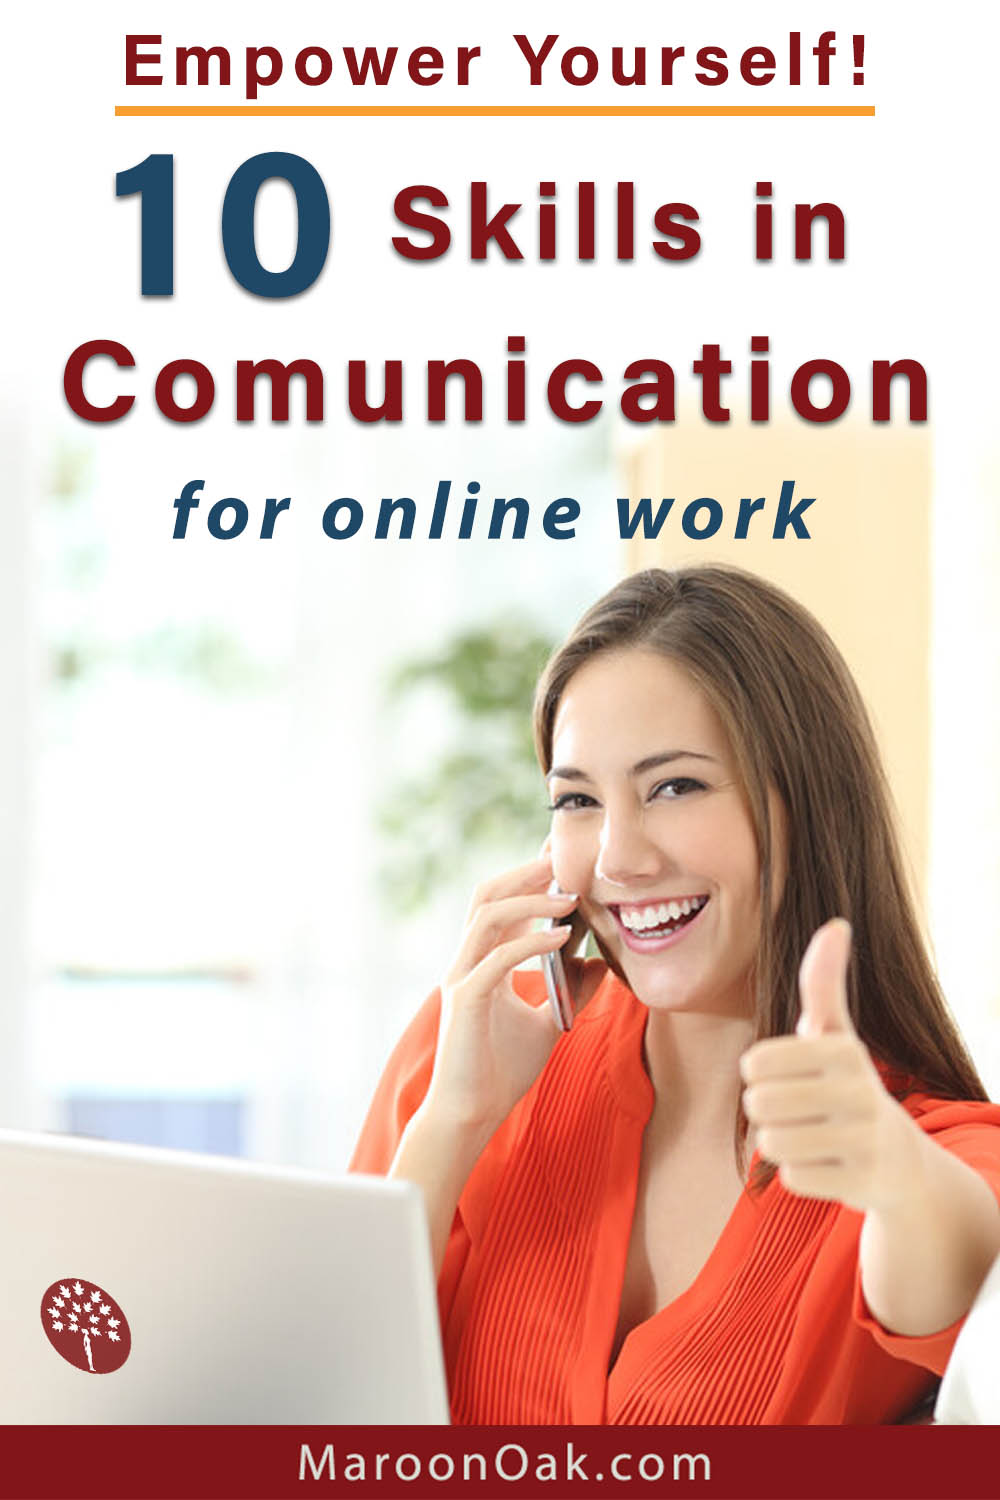 Express yourself with confidence, verbally and in writing. Score with the top 10 popular and subtle skills in communication for online work. #skills #communication